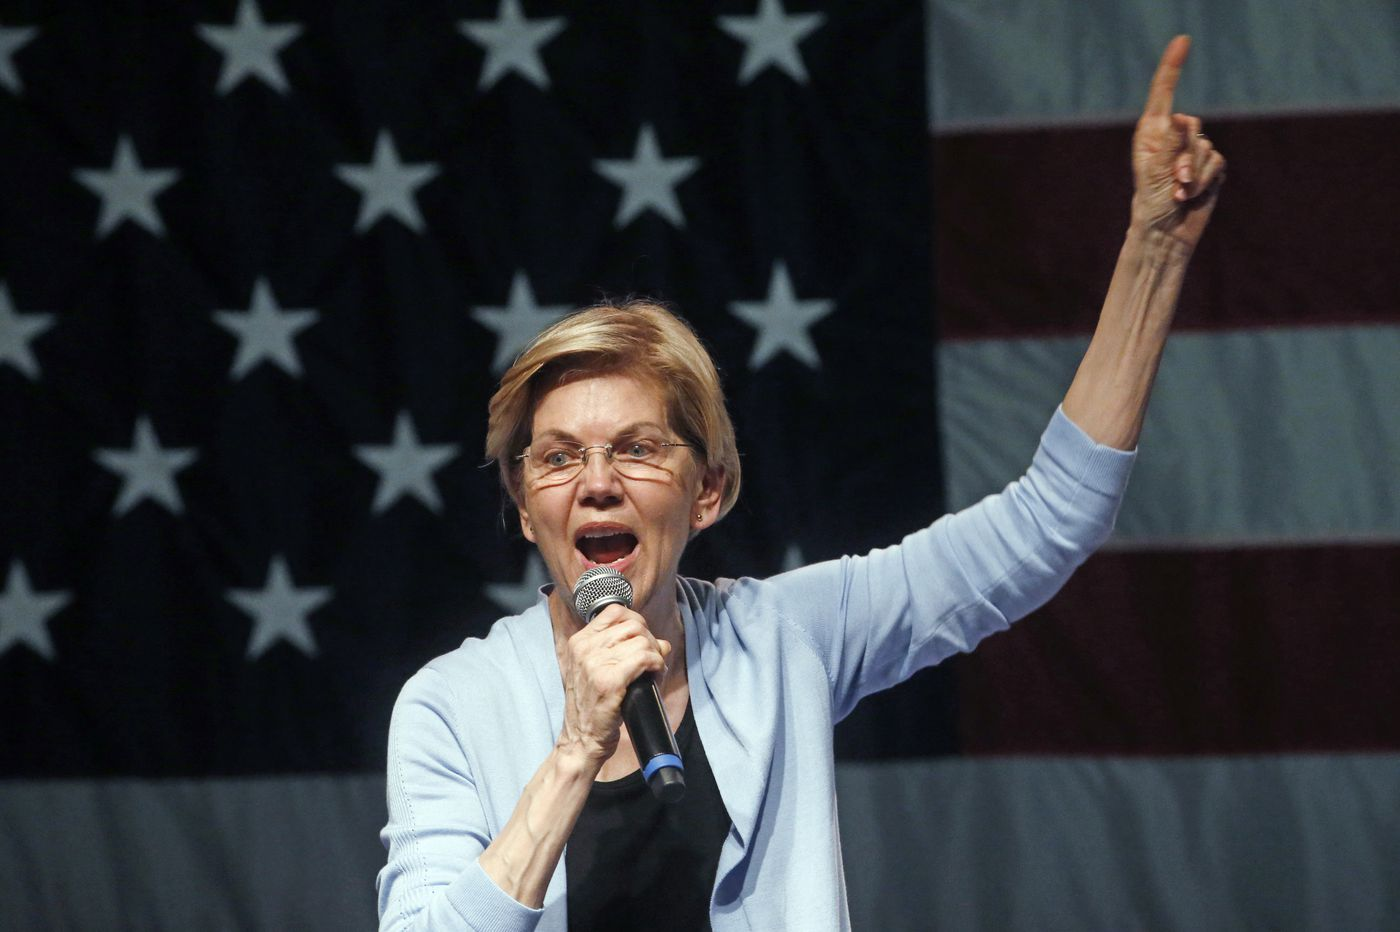 Warren Unveils Sweeping Plan To Cancel Student Debt, Provide Free College